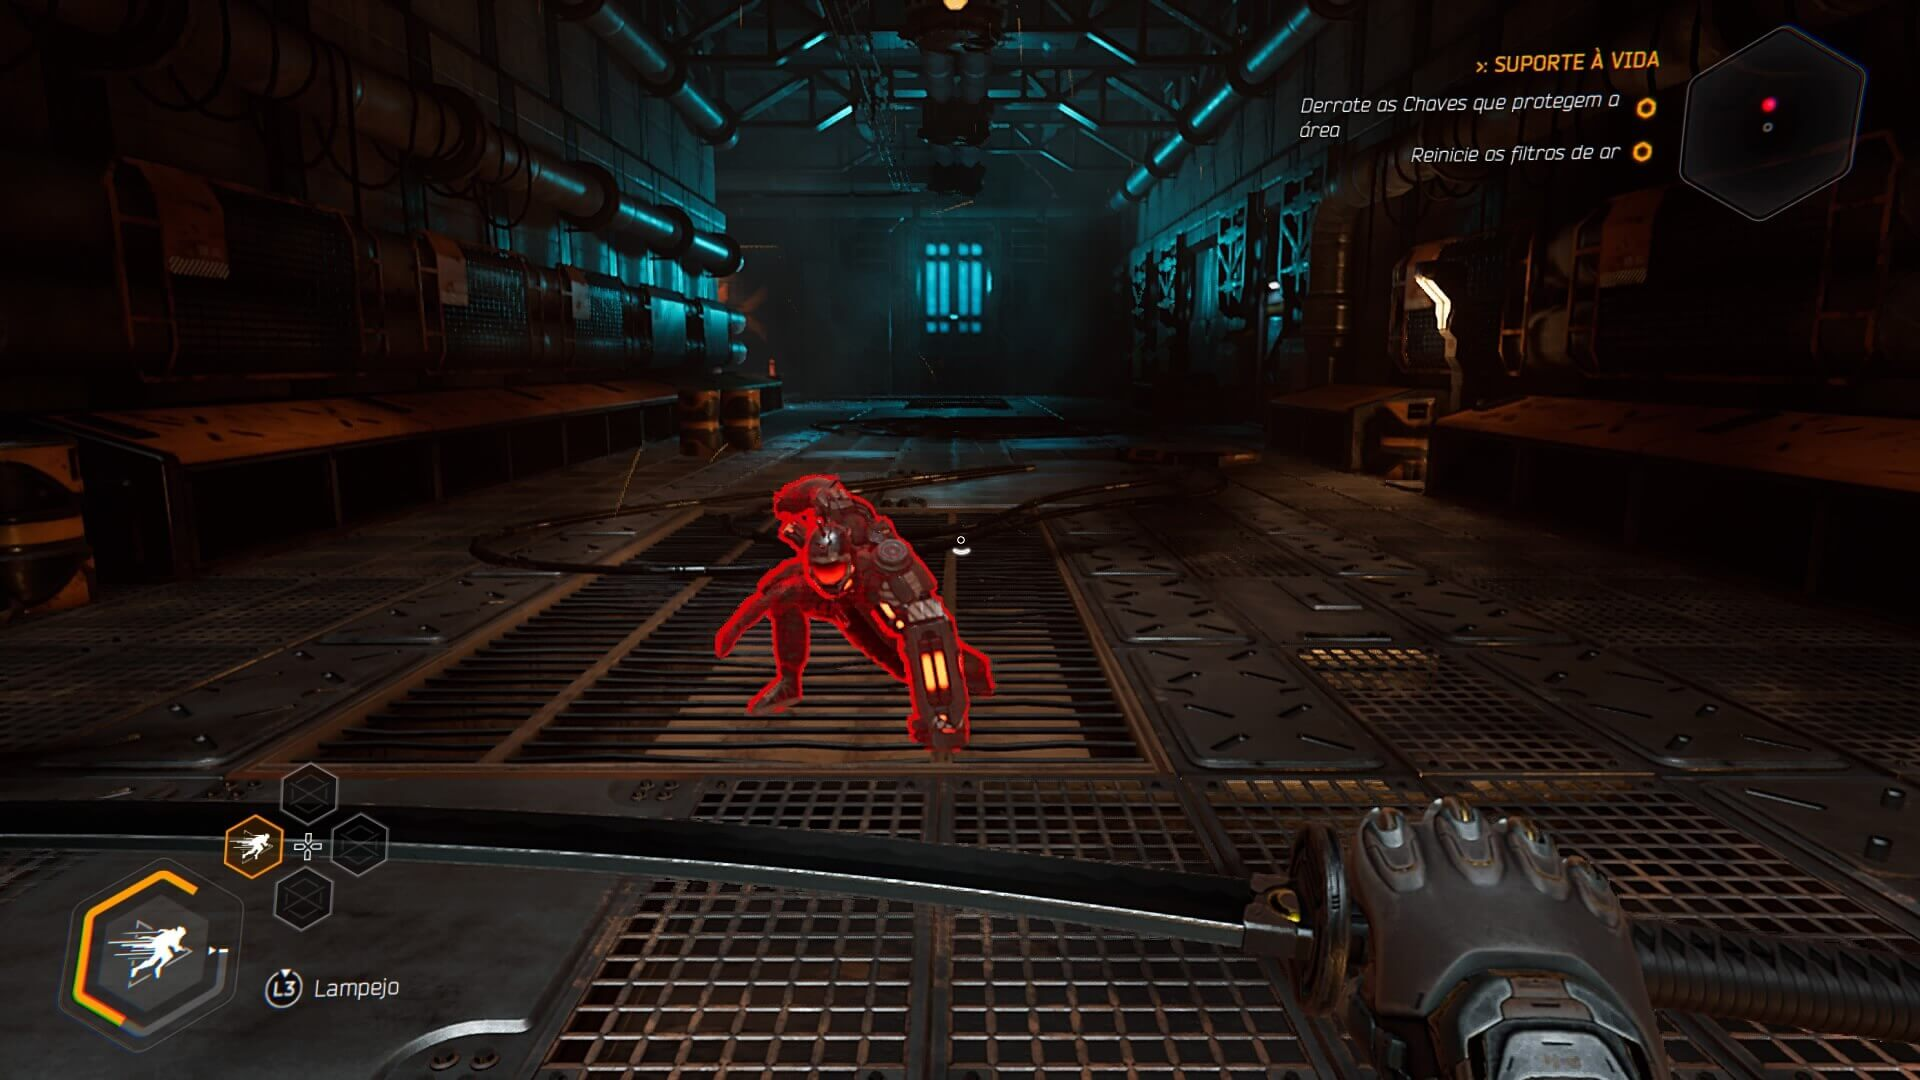 One More Level, All In!, Cyberpunk, Rage Quit, Ghostrunner, Parkour, Hack and slash, FPS, FPP, First Person, Ninja